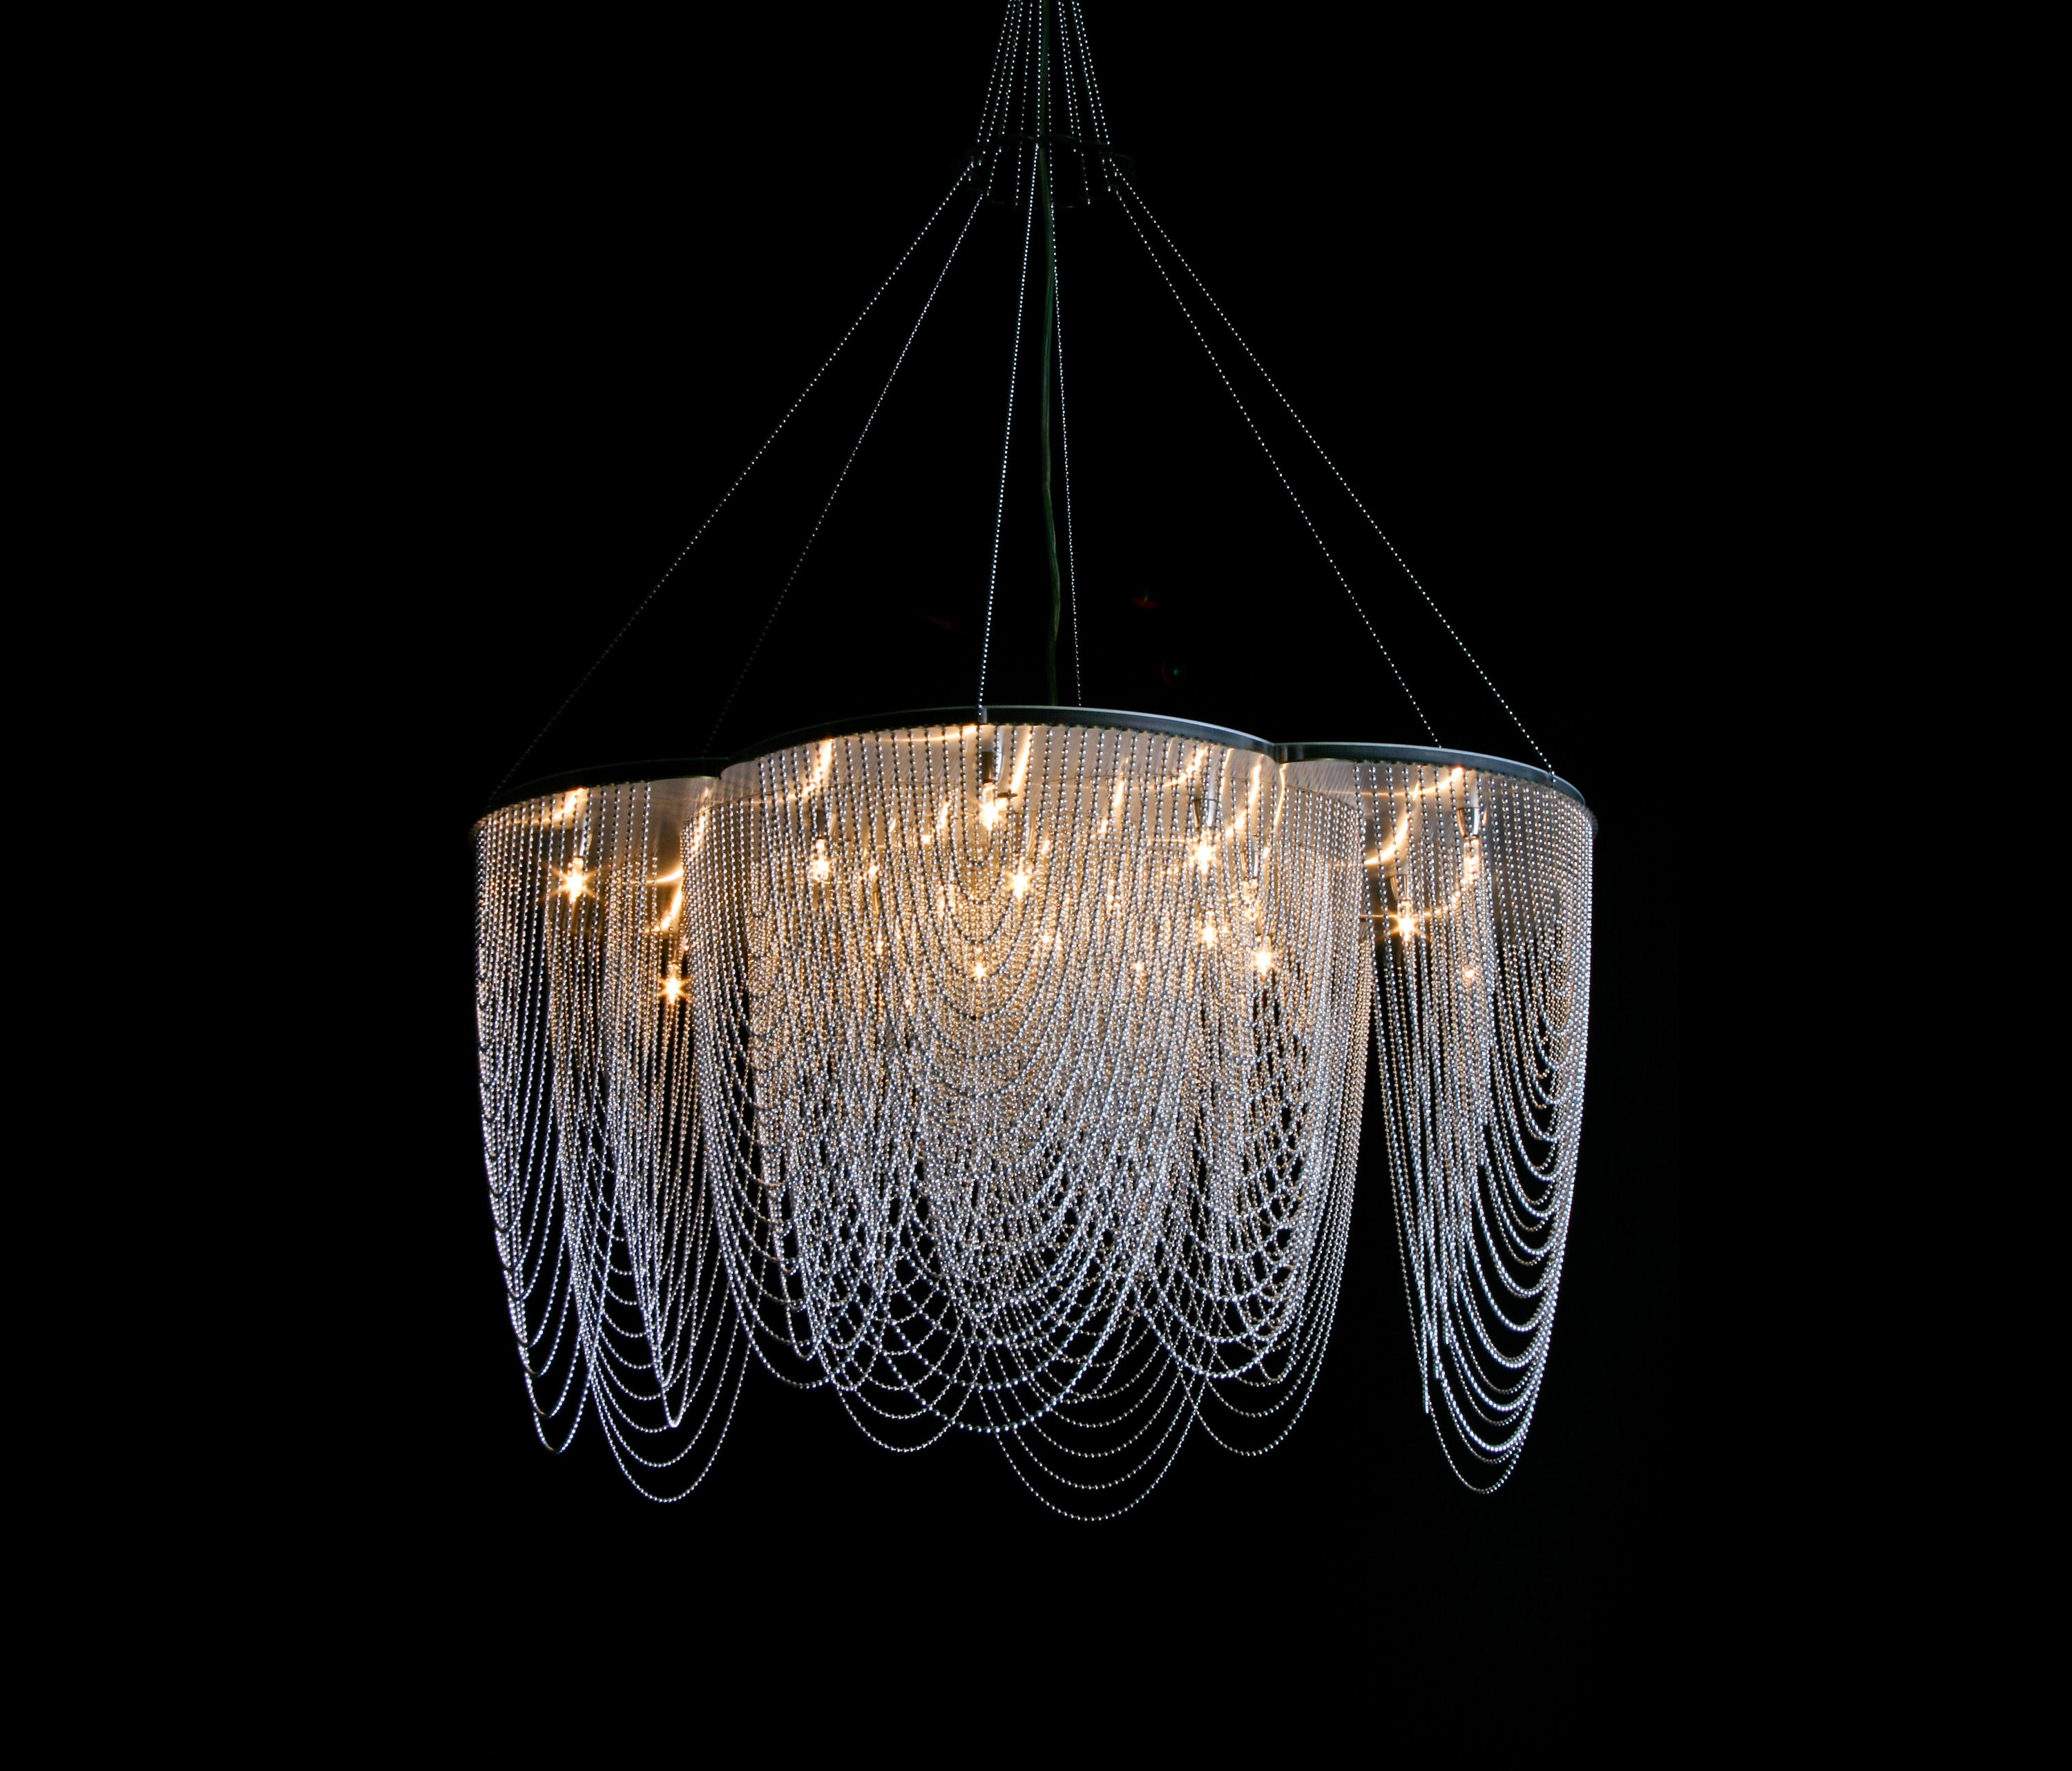 ROSE 700 SUSPENDED OPTION STRAIGHT LOOPED Lighting Objects From Willo